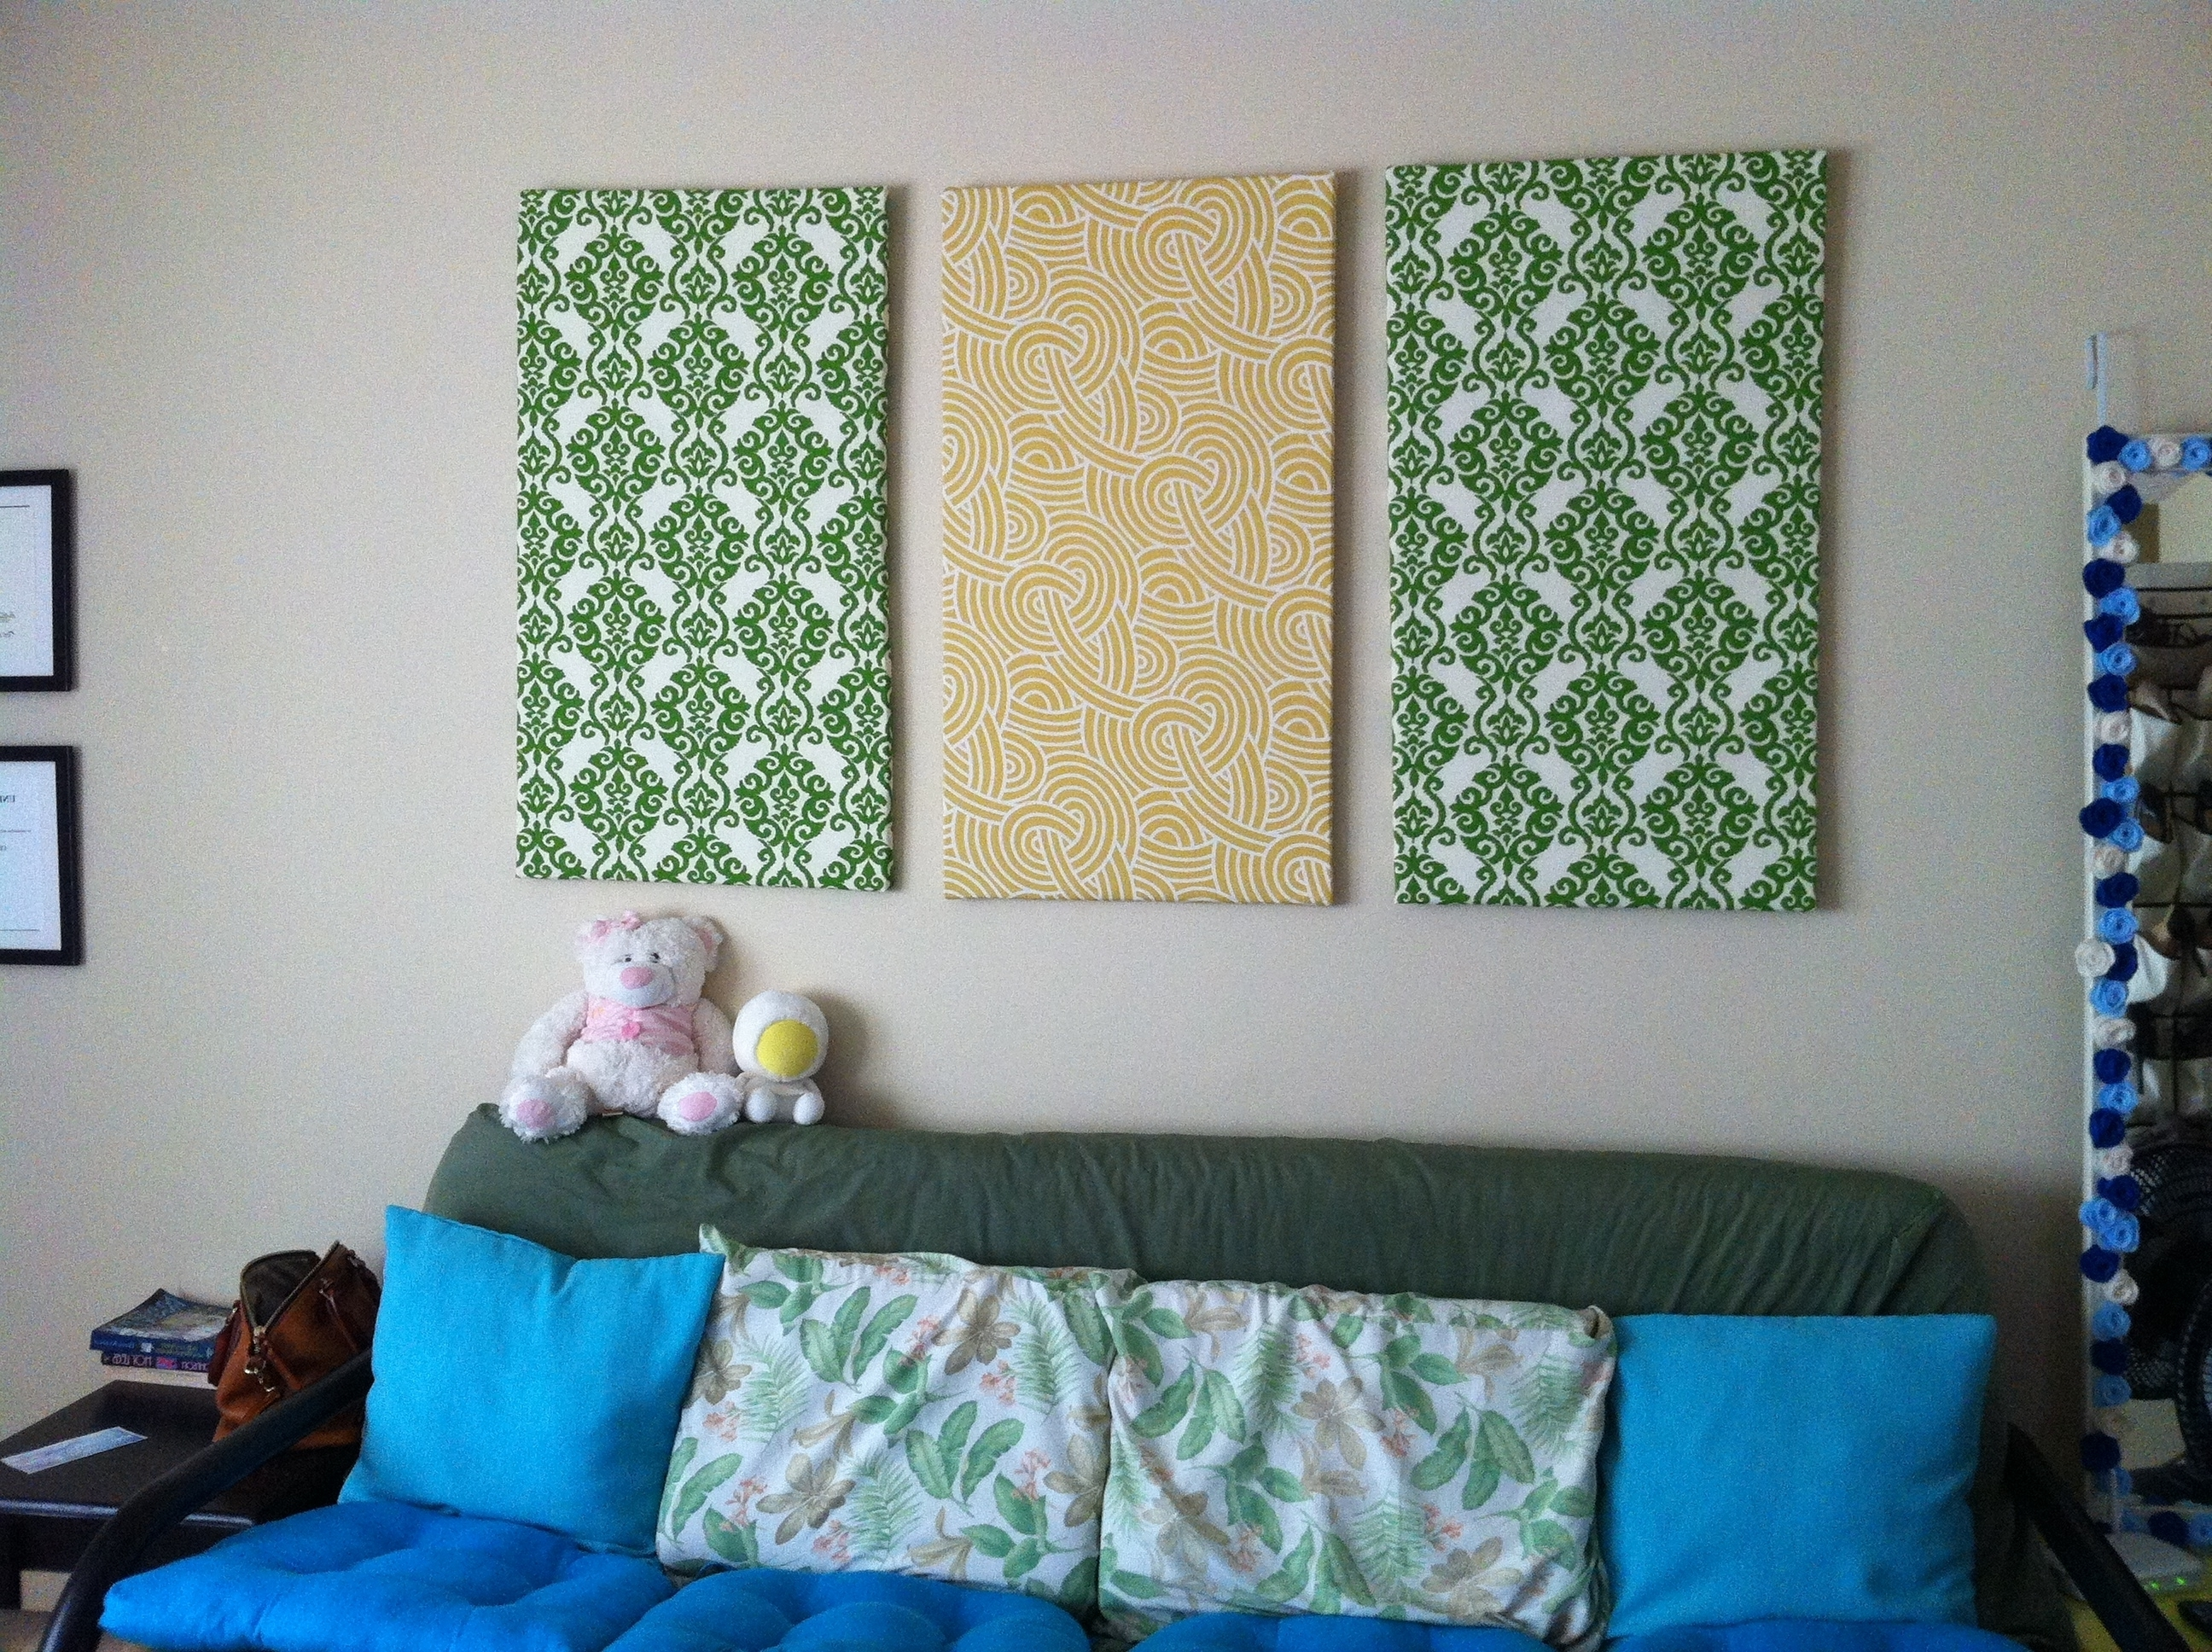 Some Kind Diy Wall Art To Decorating Homes — The Home Redesign With 2017 Fabric Wall Art (View 14 of 15)